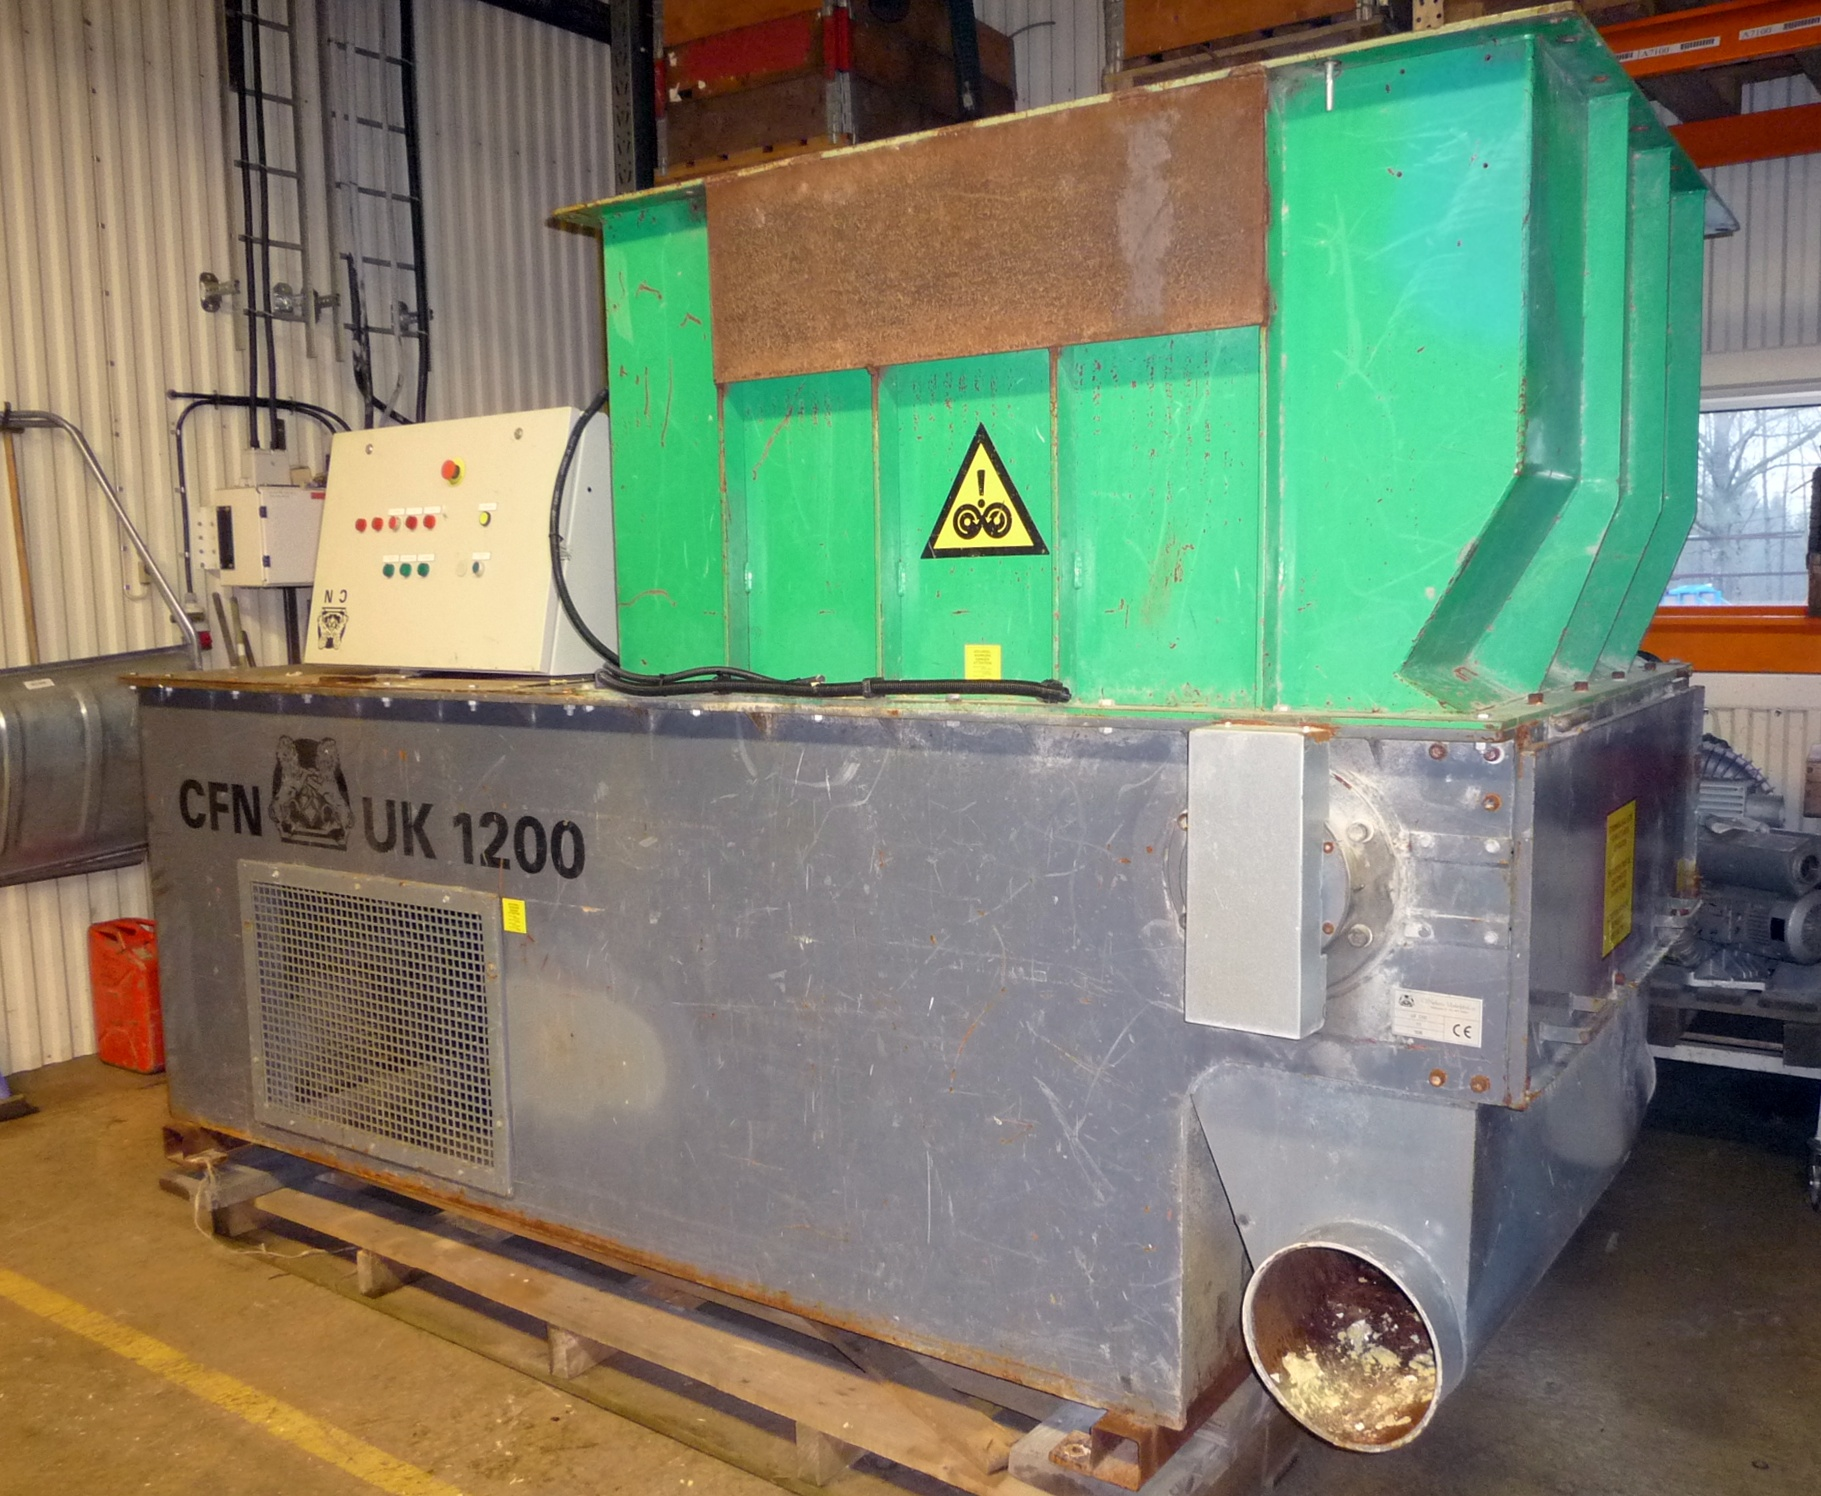 Broyeur bois c f nielsen uk1200 machines d 39 occasion exapro - Broyeuse a bois ...